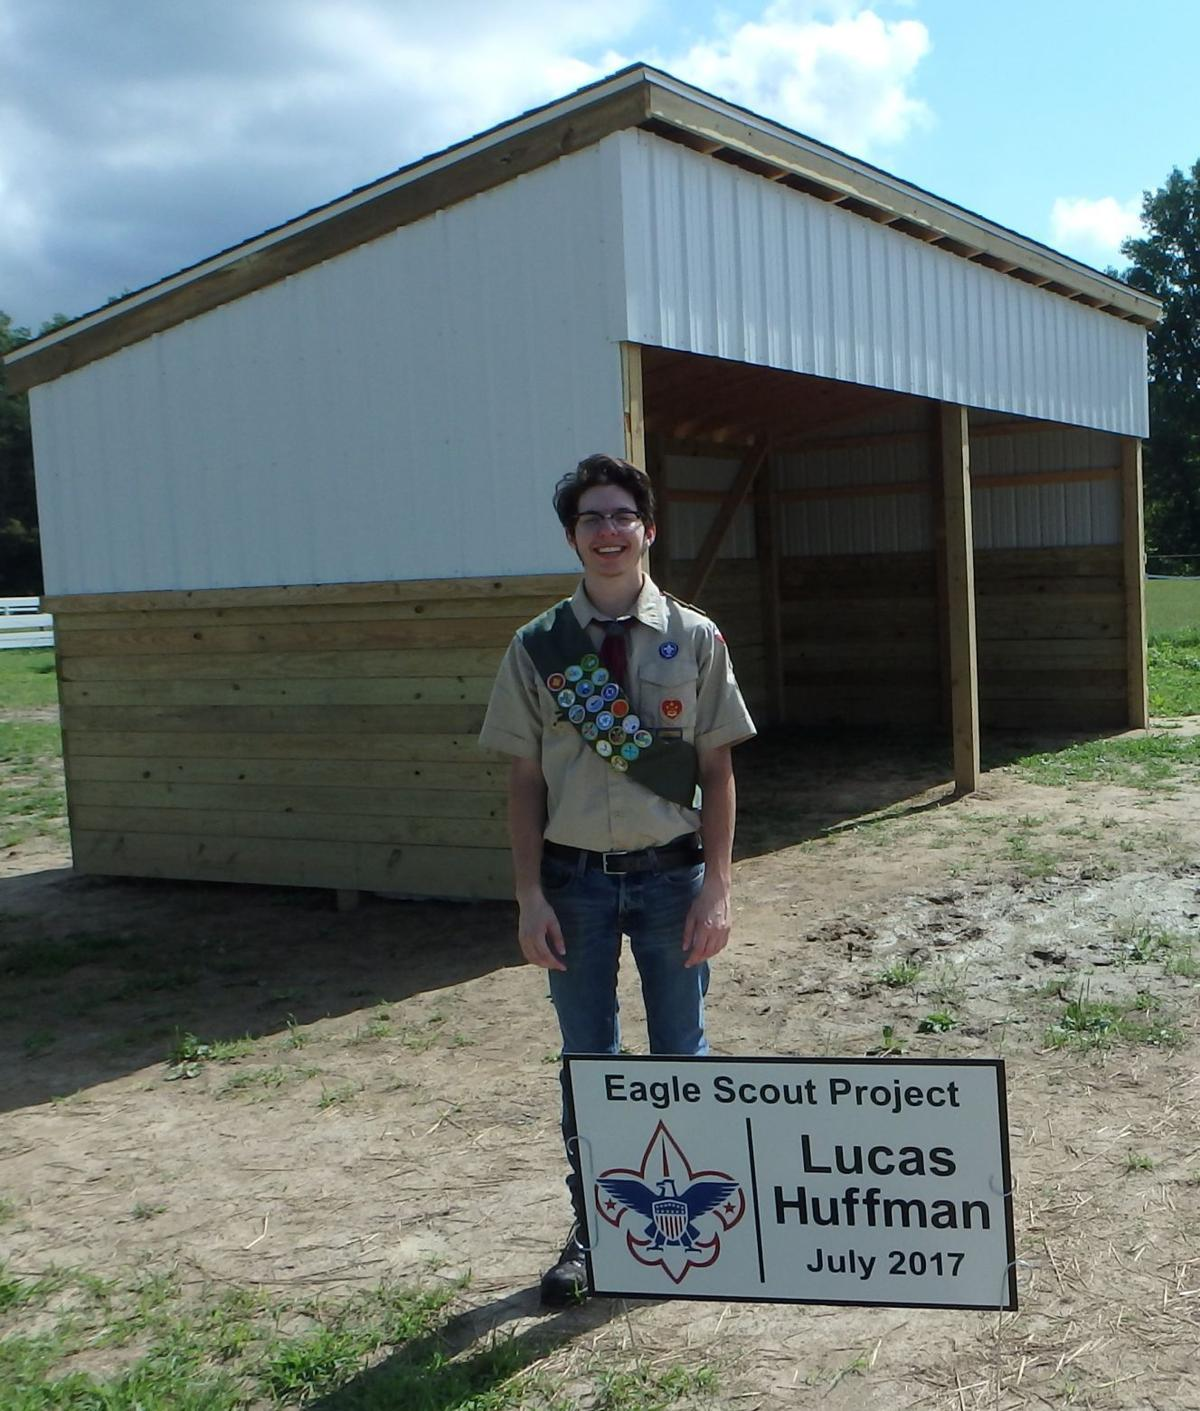 Lucas Huffman earns Eagle Scout